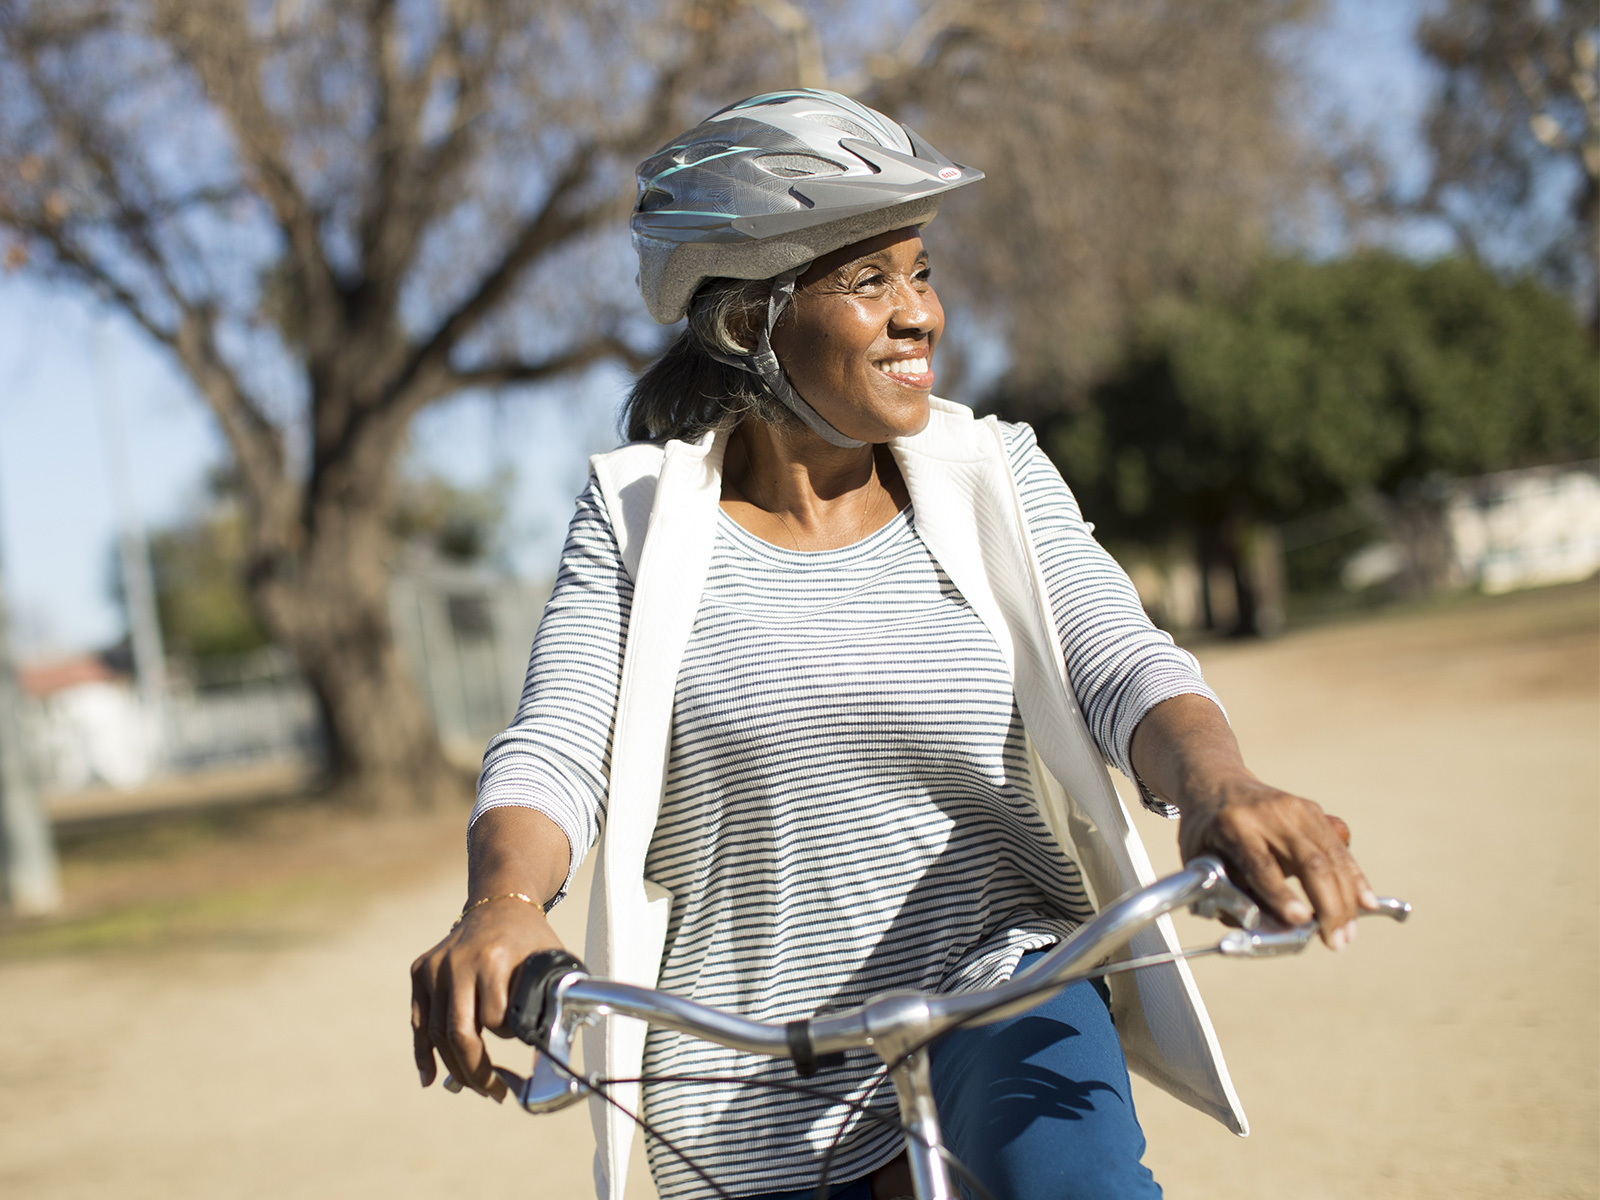 A woman smiles while riding her bike outside